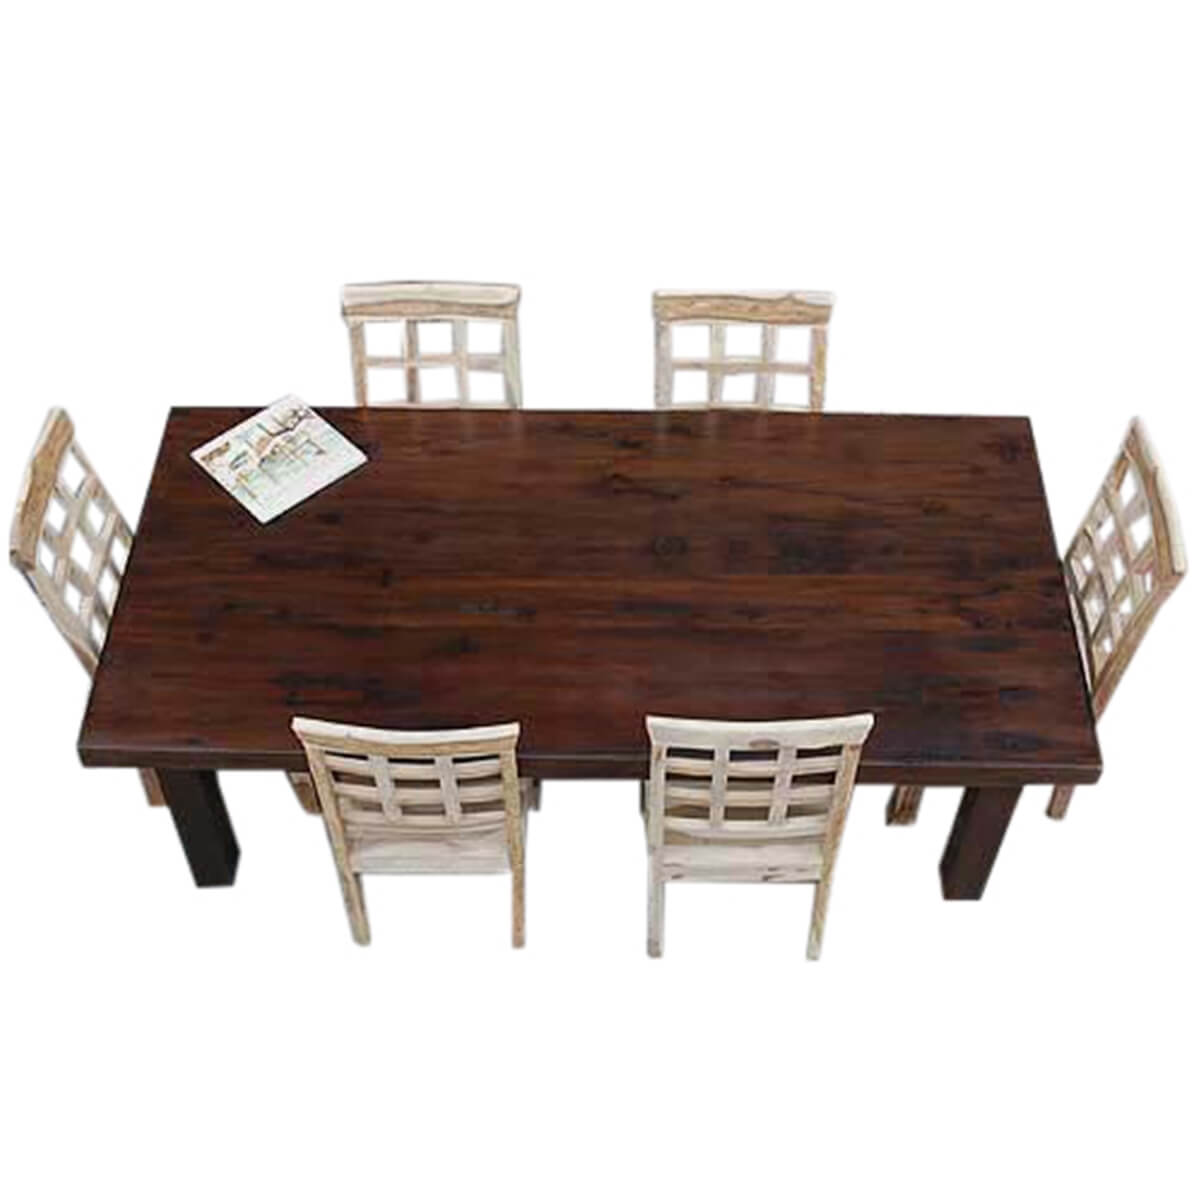 santa fe solid wood rustic dining table and chair set for 6 people. Black Bedroom Furniture Sets. Home Design Ideas